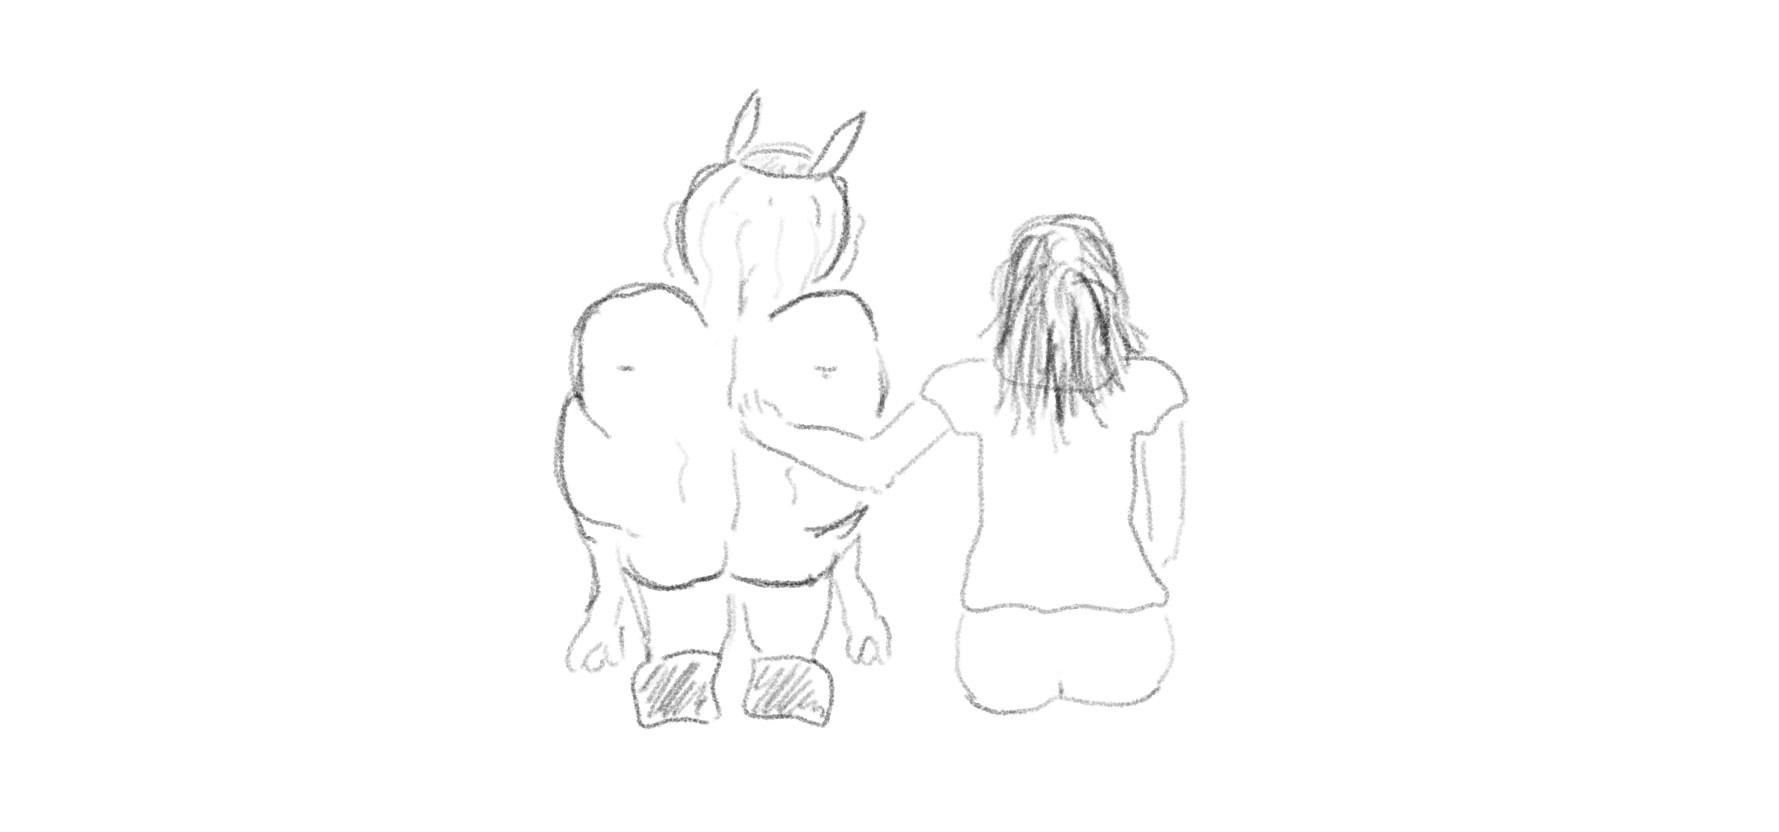 A beast on the left, squatting, and a woman on the right, sitting, with her arm around its back.